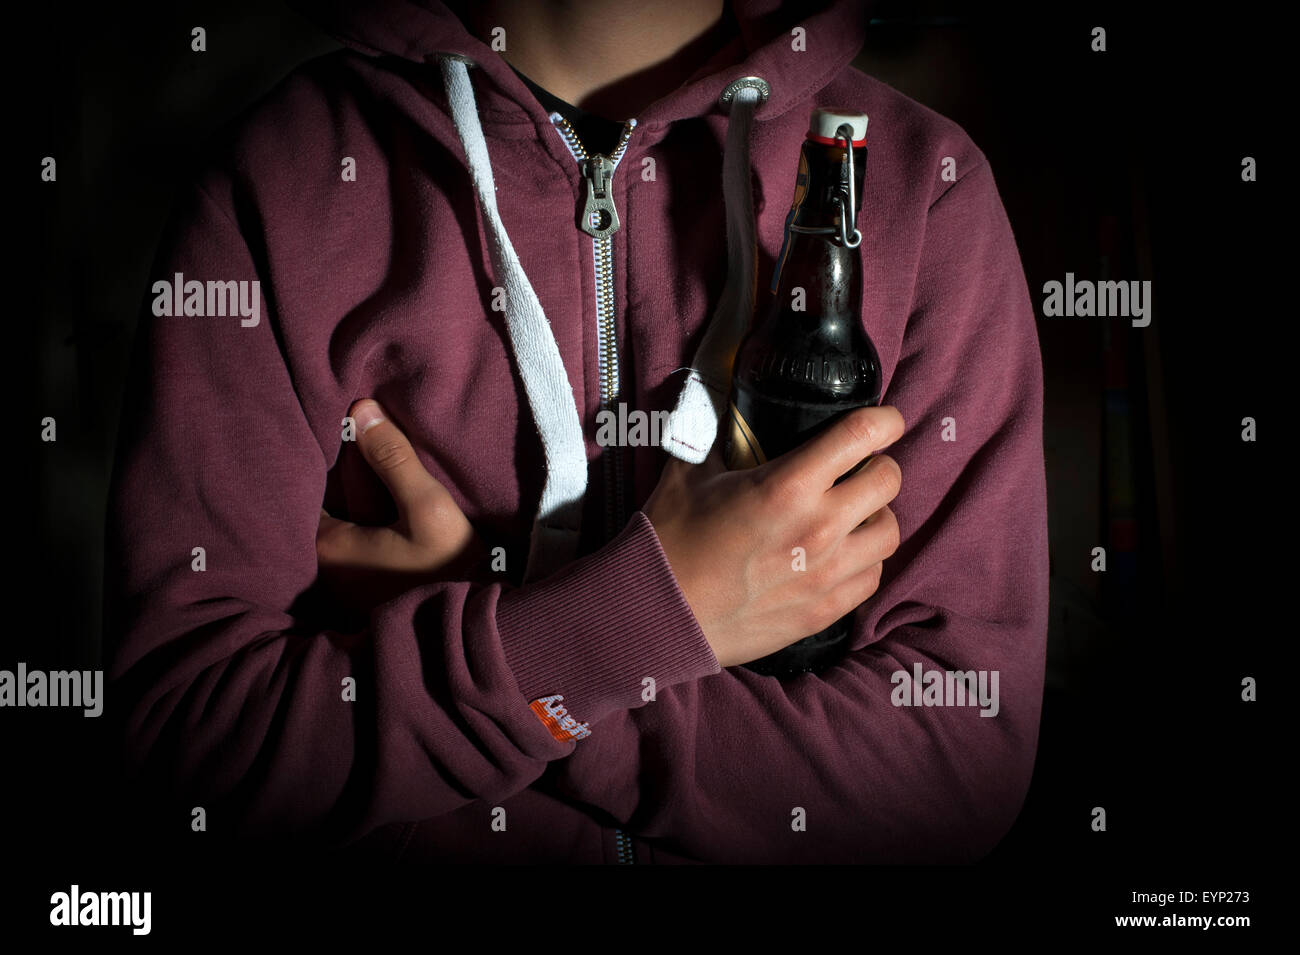 Teenager with Alcohol - Stock Image